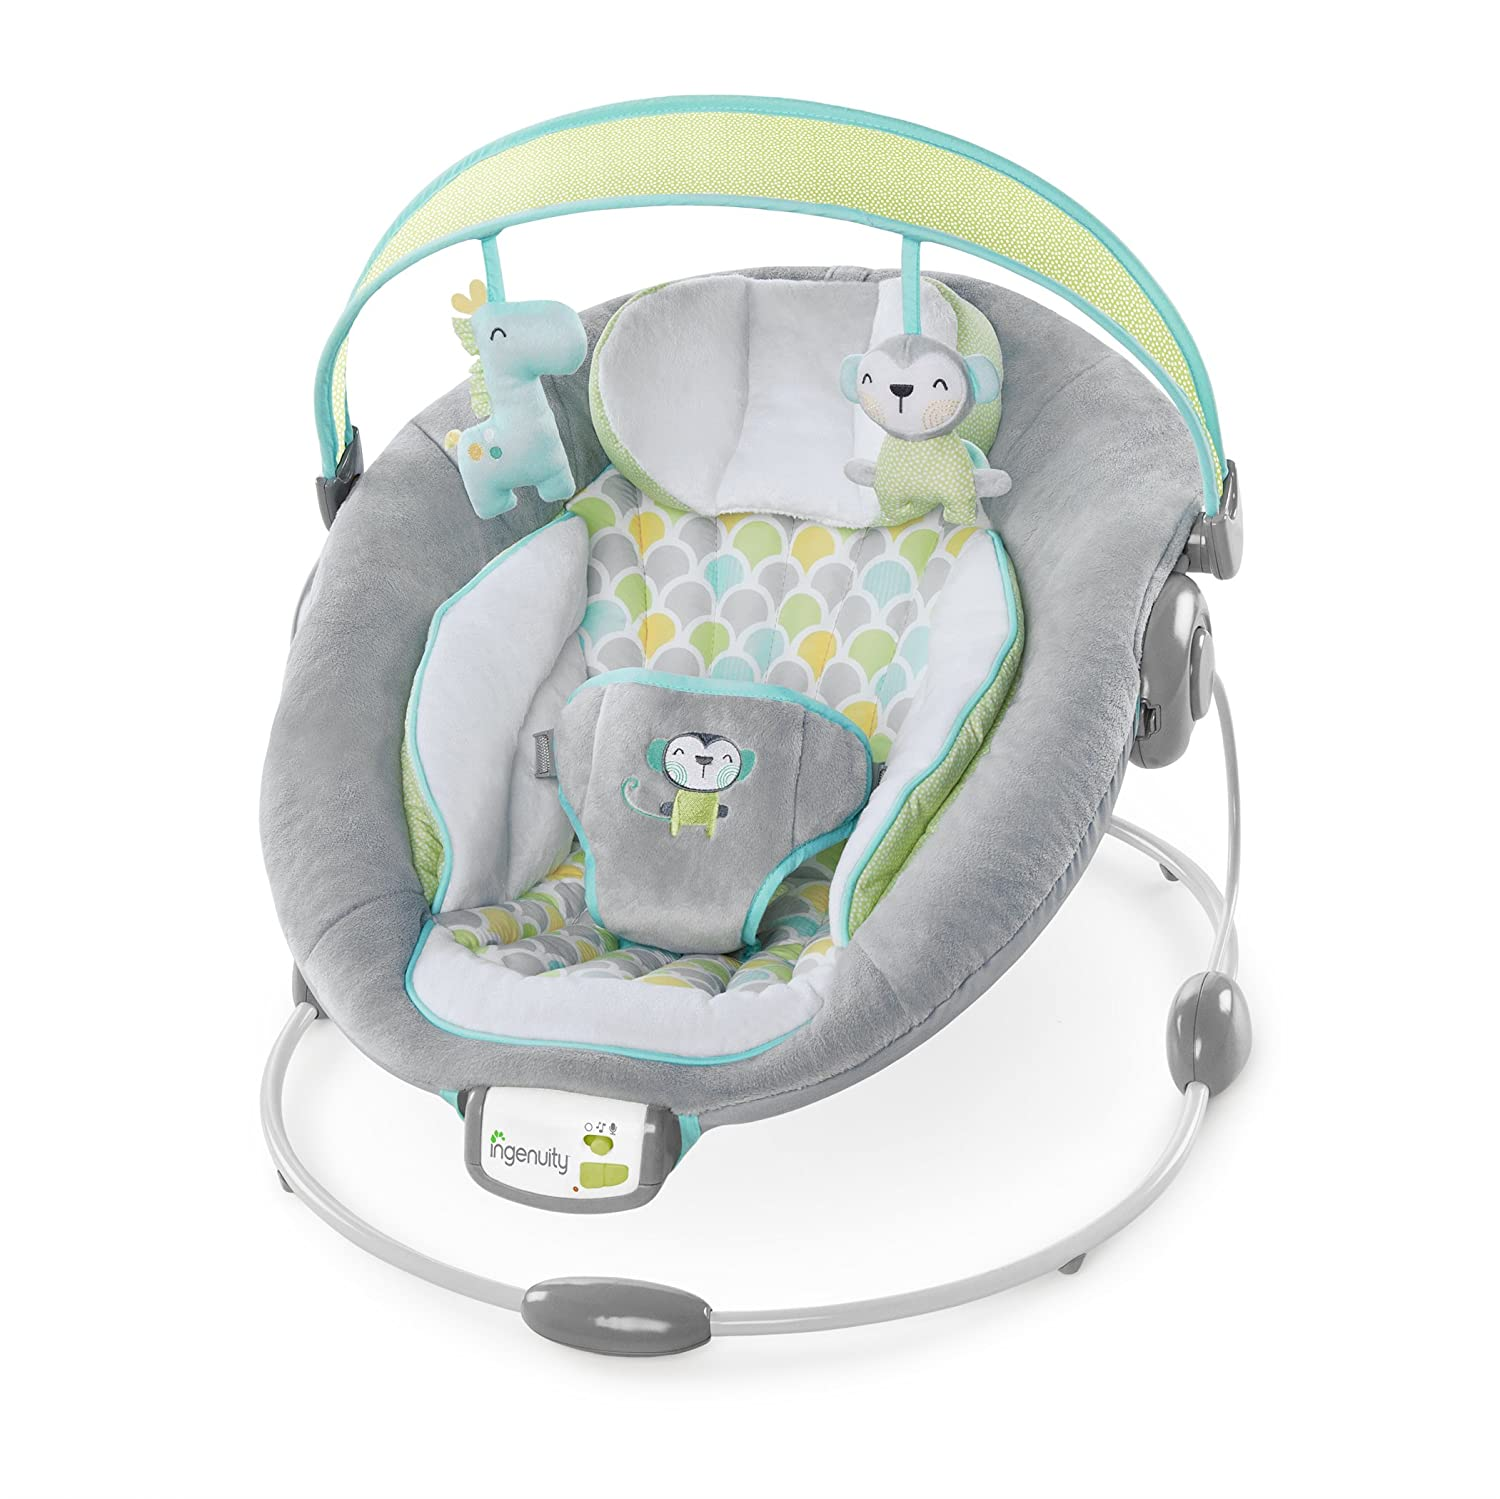 Ingenuity 60389 Soothe and Delight Bouncer  - Savvy Safari